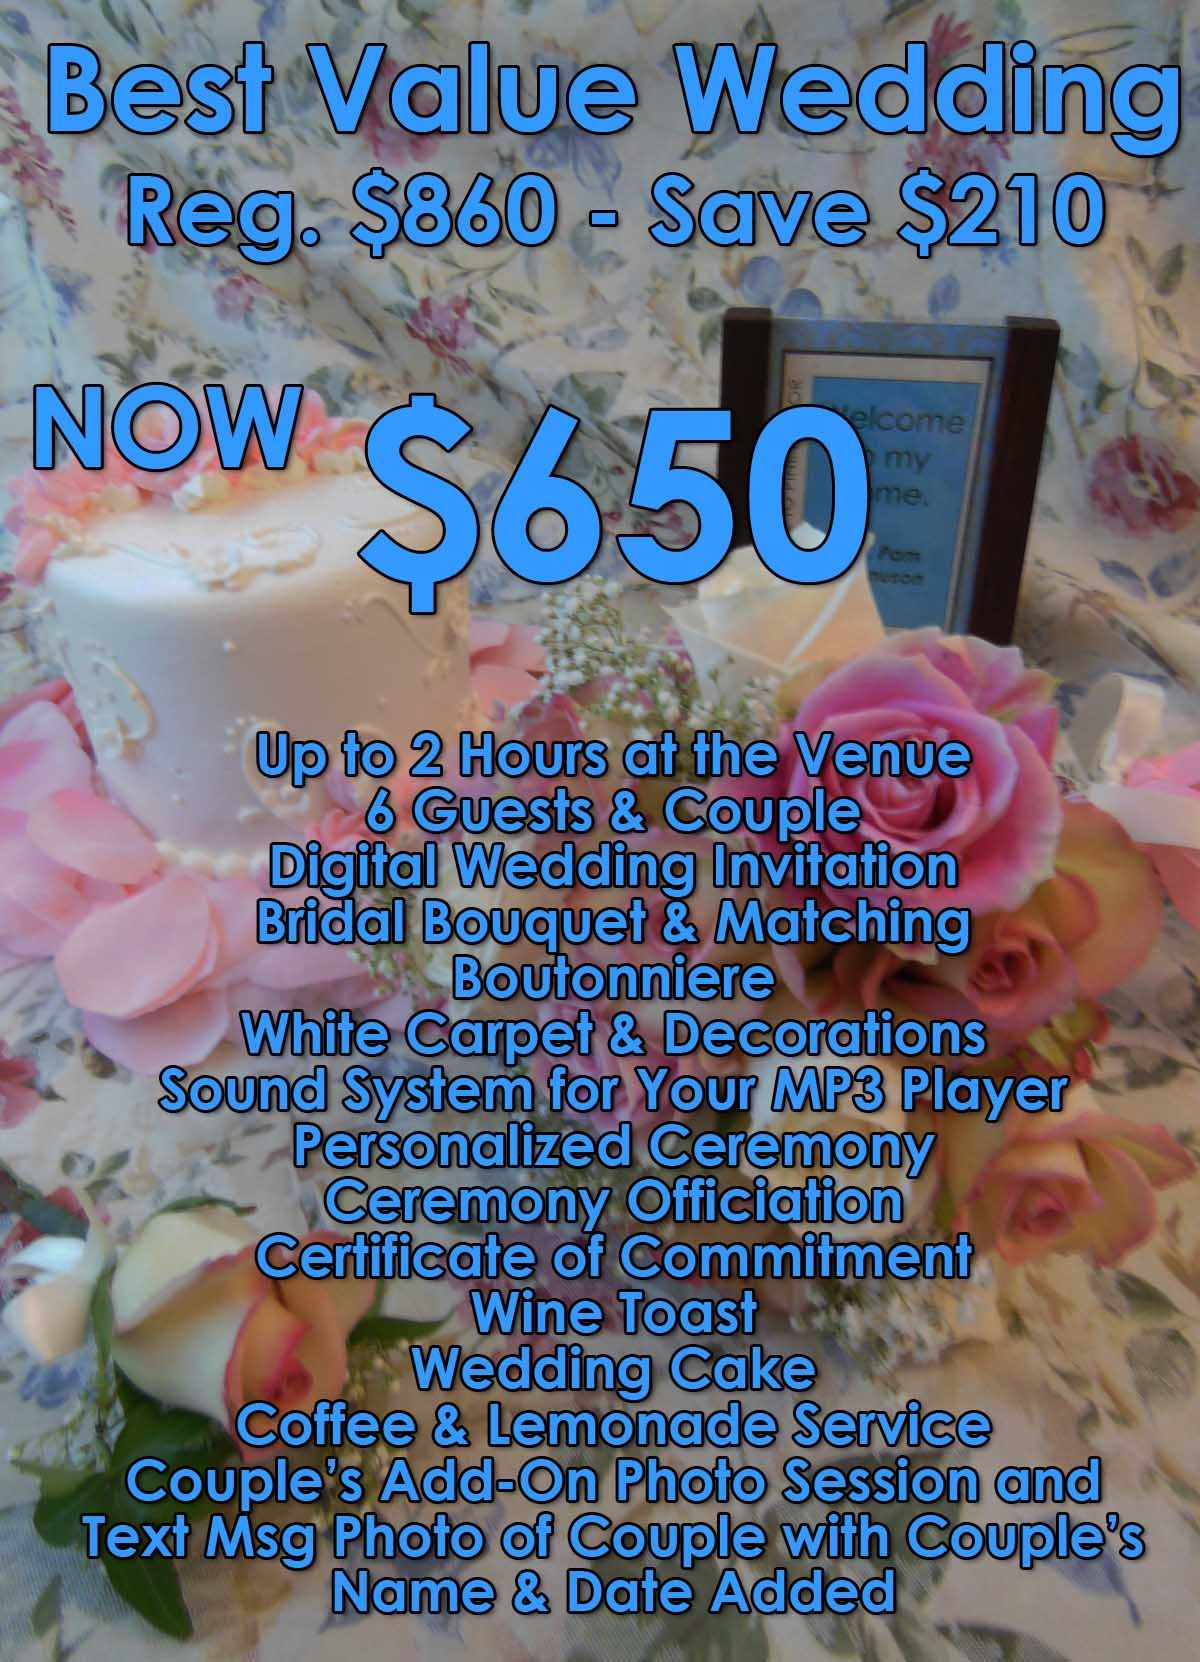 Best Value Wedding Packages Budget Ideas Small Venue 1200x1662 In 270 2kb